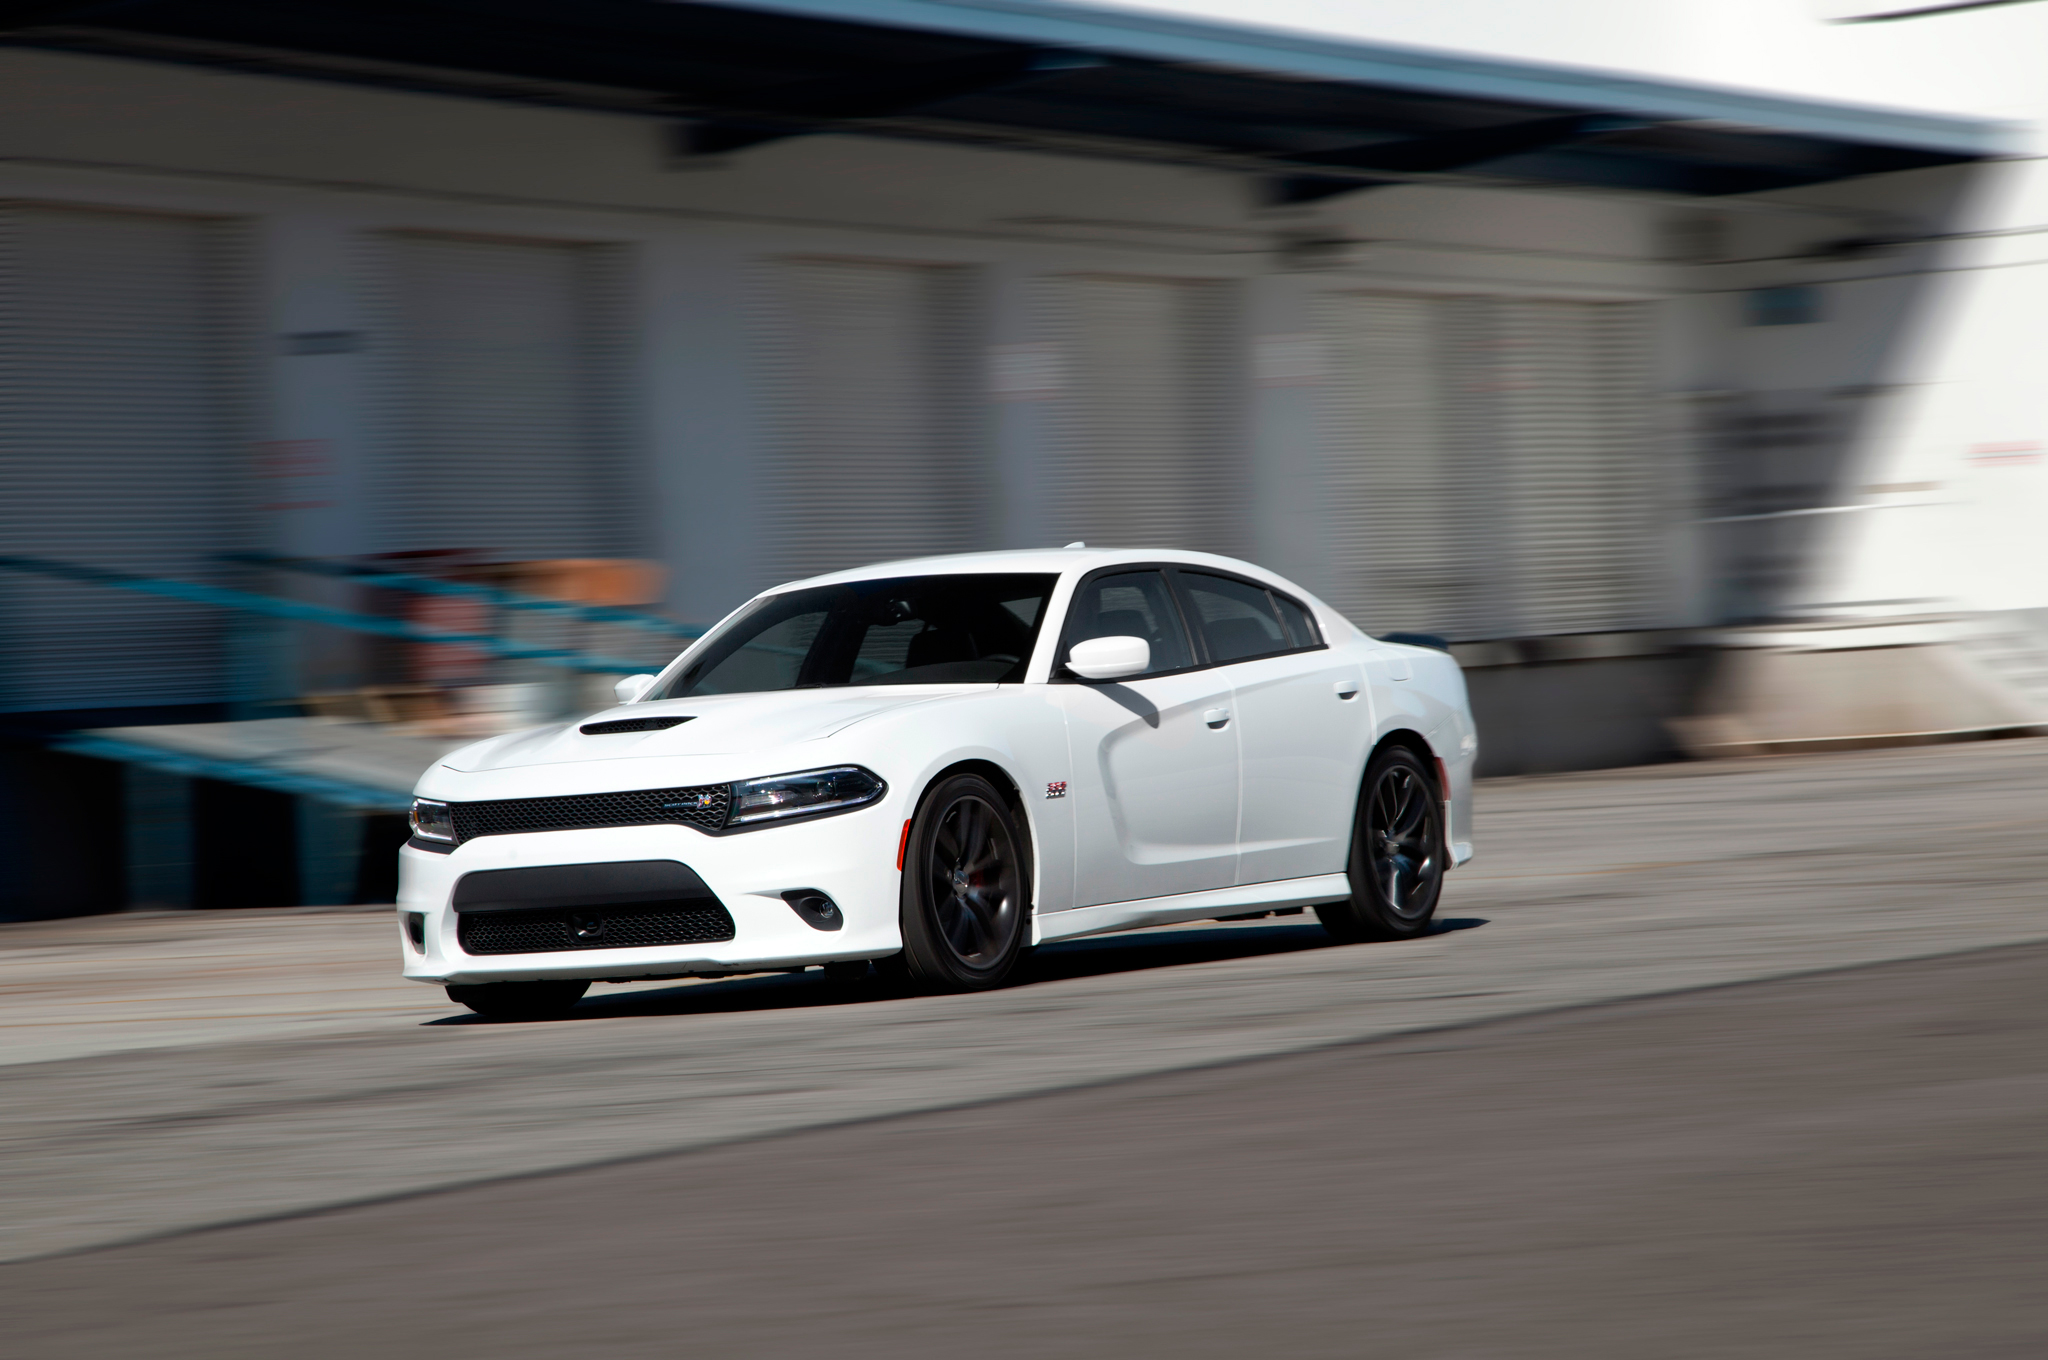 2019 Dodge Charger RT photo - 4